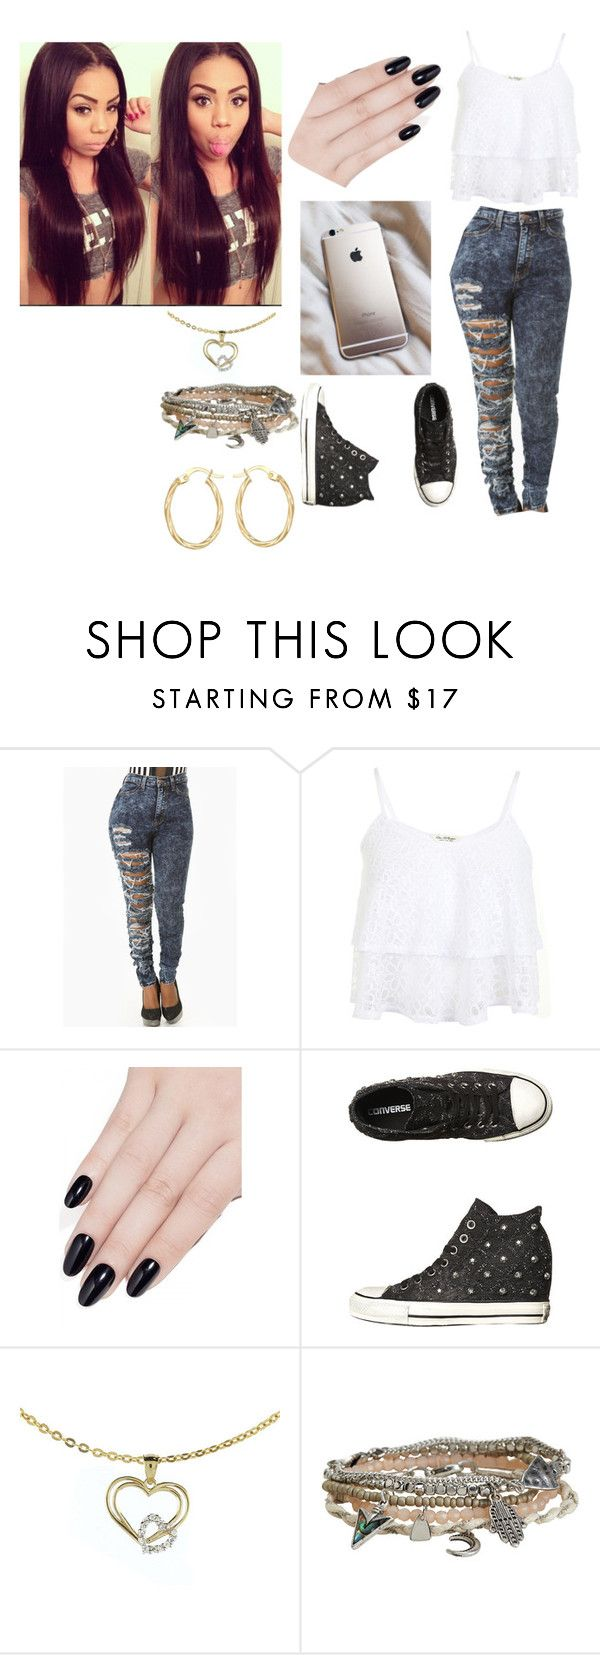 """Untitled #1115"" by girlie-kendrick ❤ liked on Polyvore featuring Miss Selfridge, ncLA, Converse, Aéropostale, Lord & Taylor, women's clothing, women's fashion, women, female and woman"